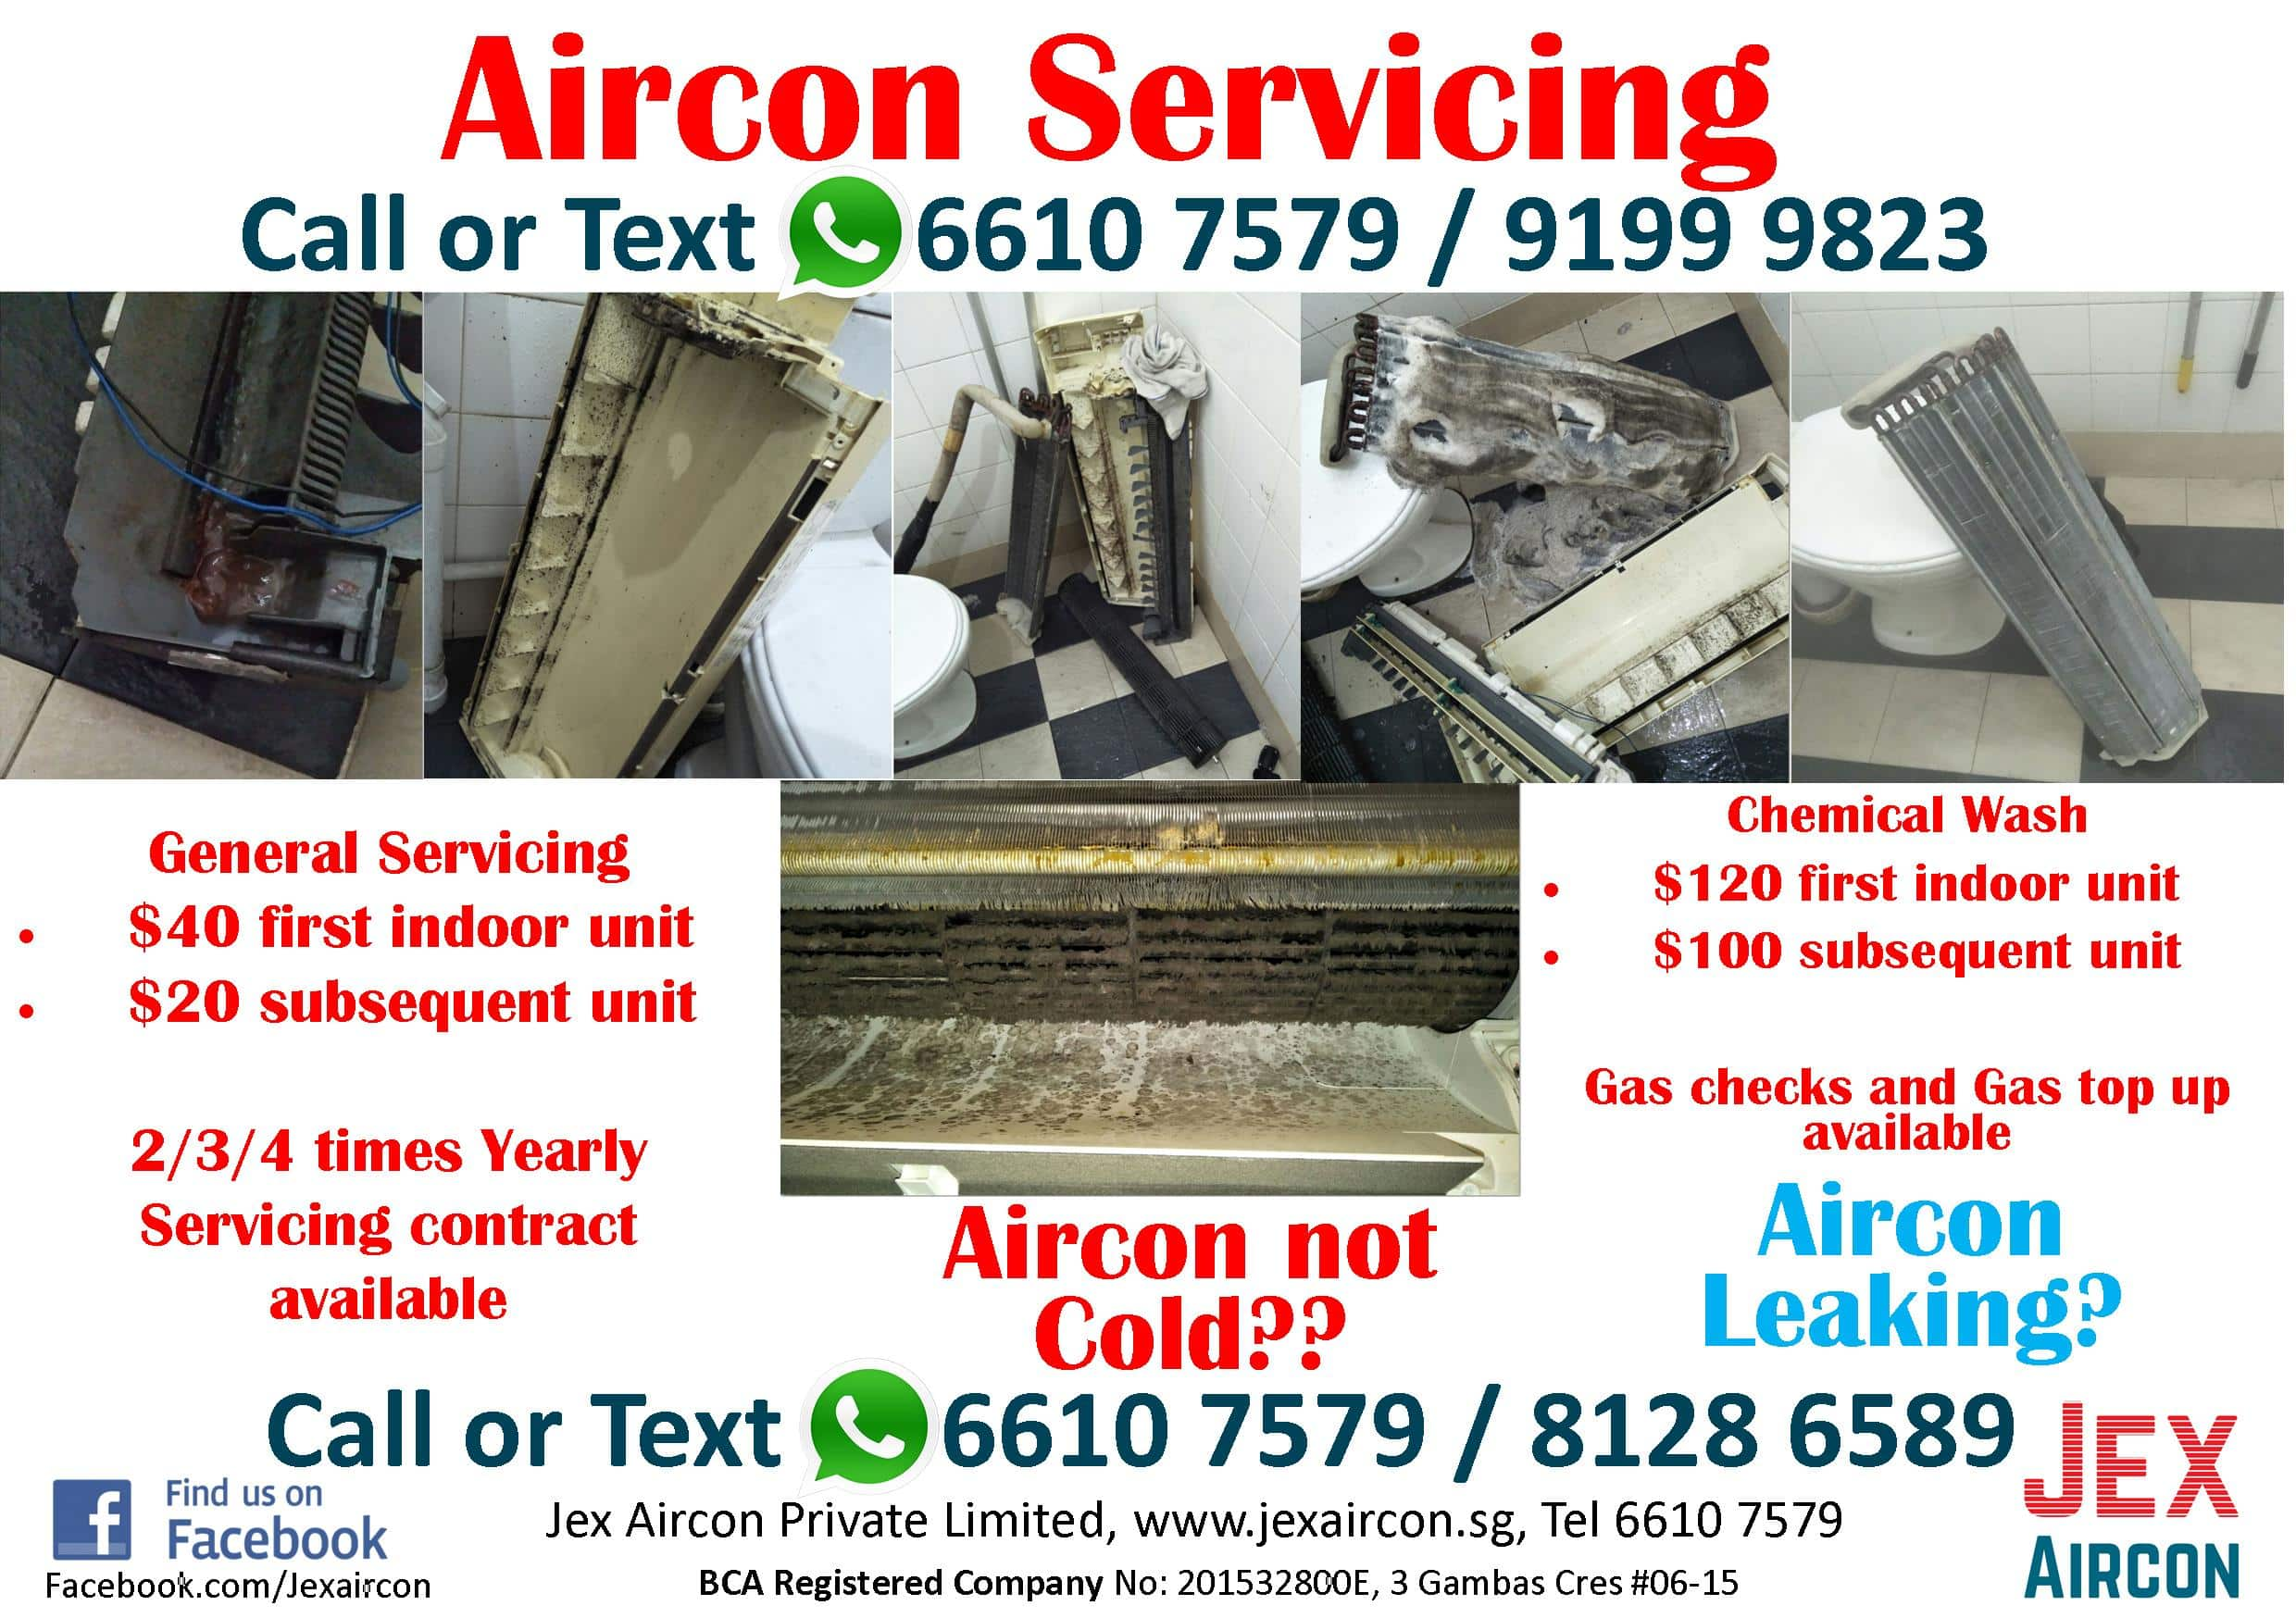 Aircon servicing and chemical wash Singapore